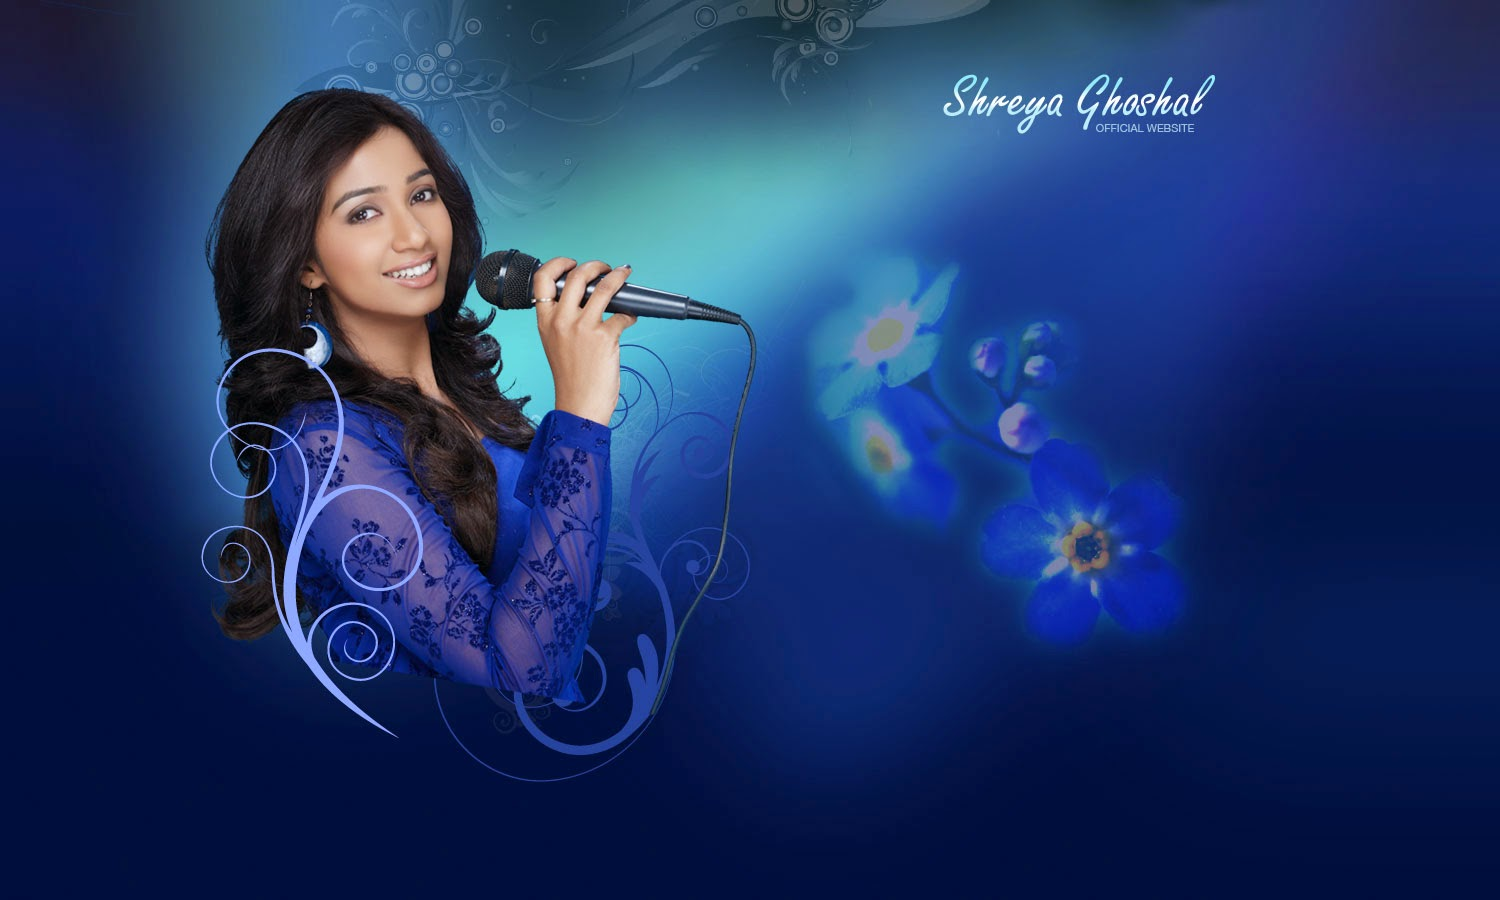 Shreya Ghoshal Telugu Hit Songs Free Download - Shreya Ghoshal